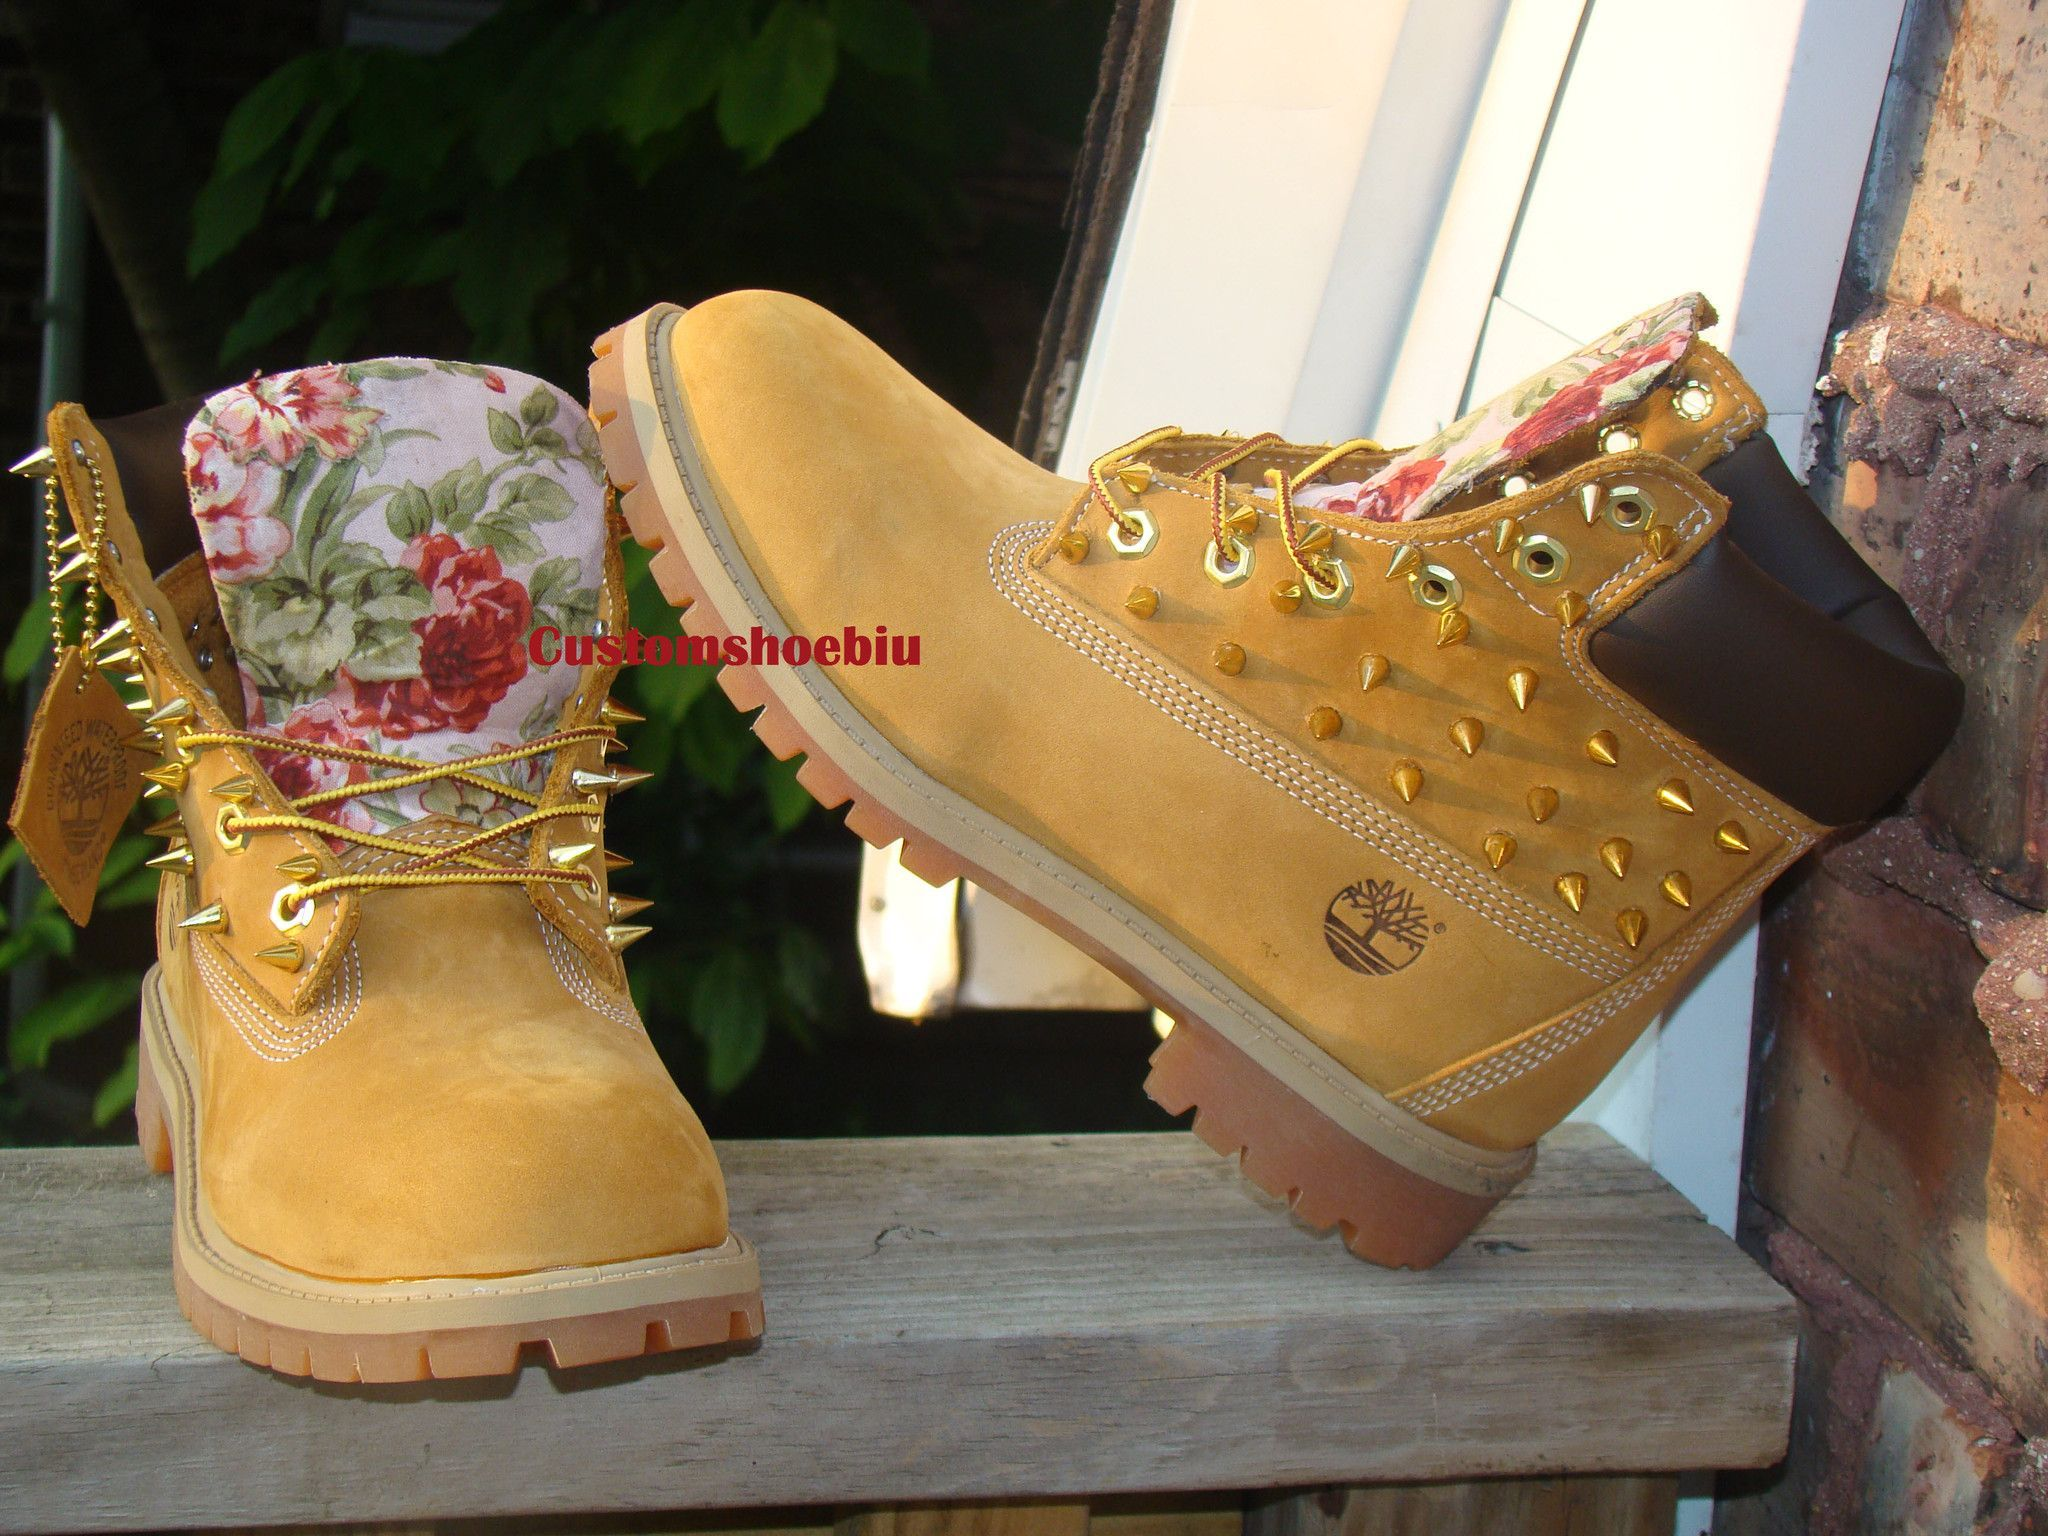 Custom Light Pink Timberland In Spiked Print Floral 2019 4A3RL5cjq